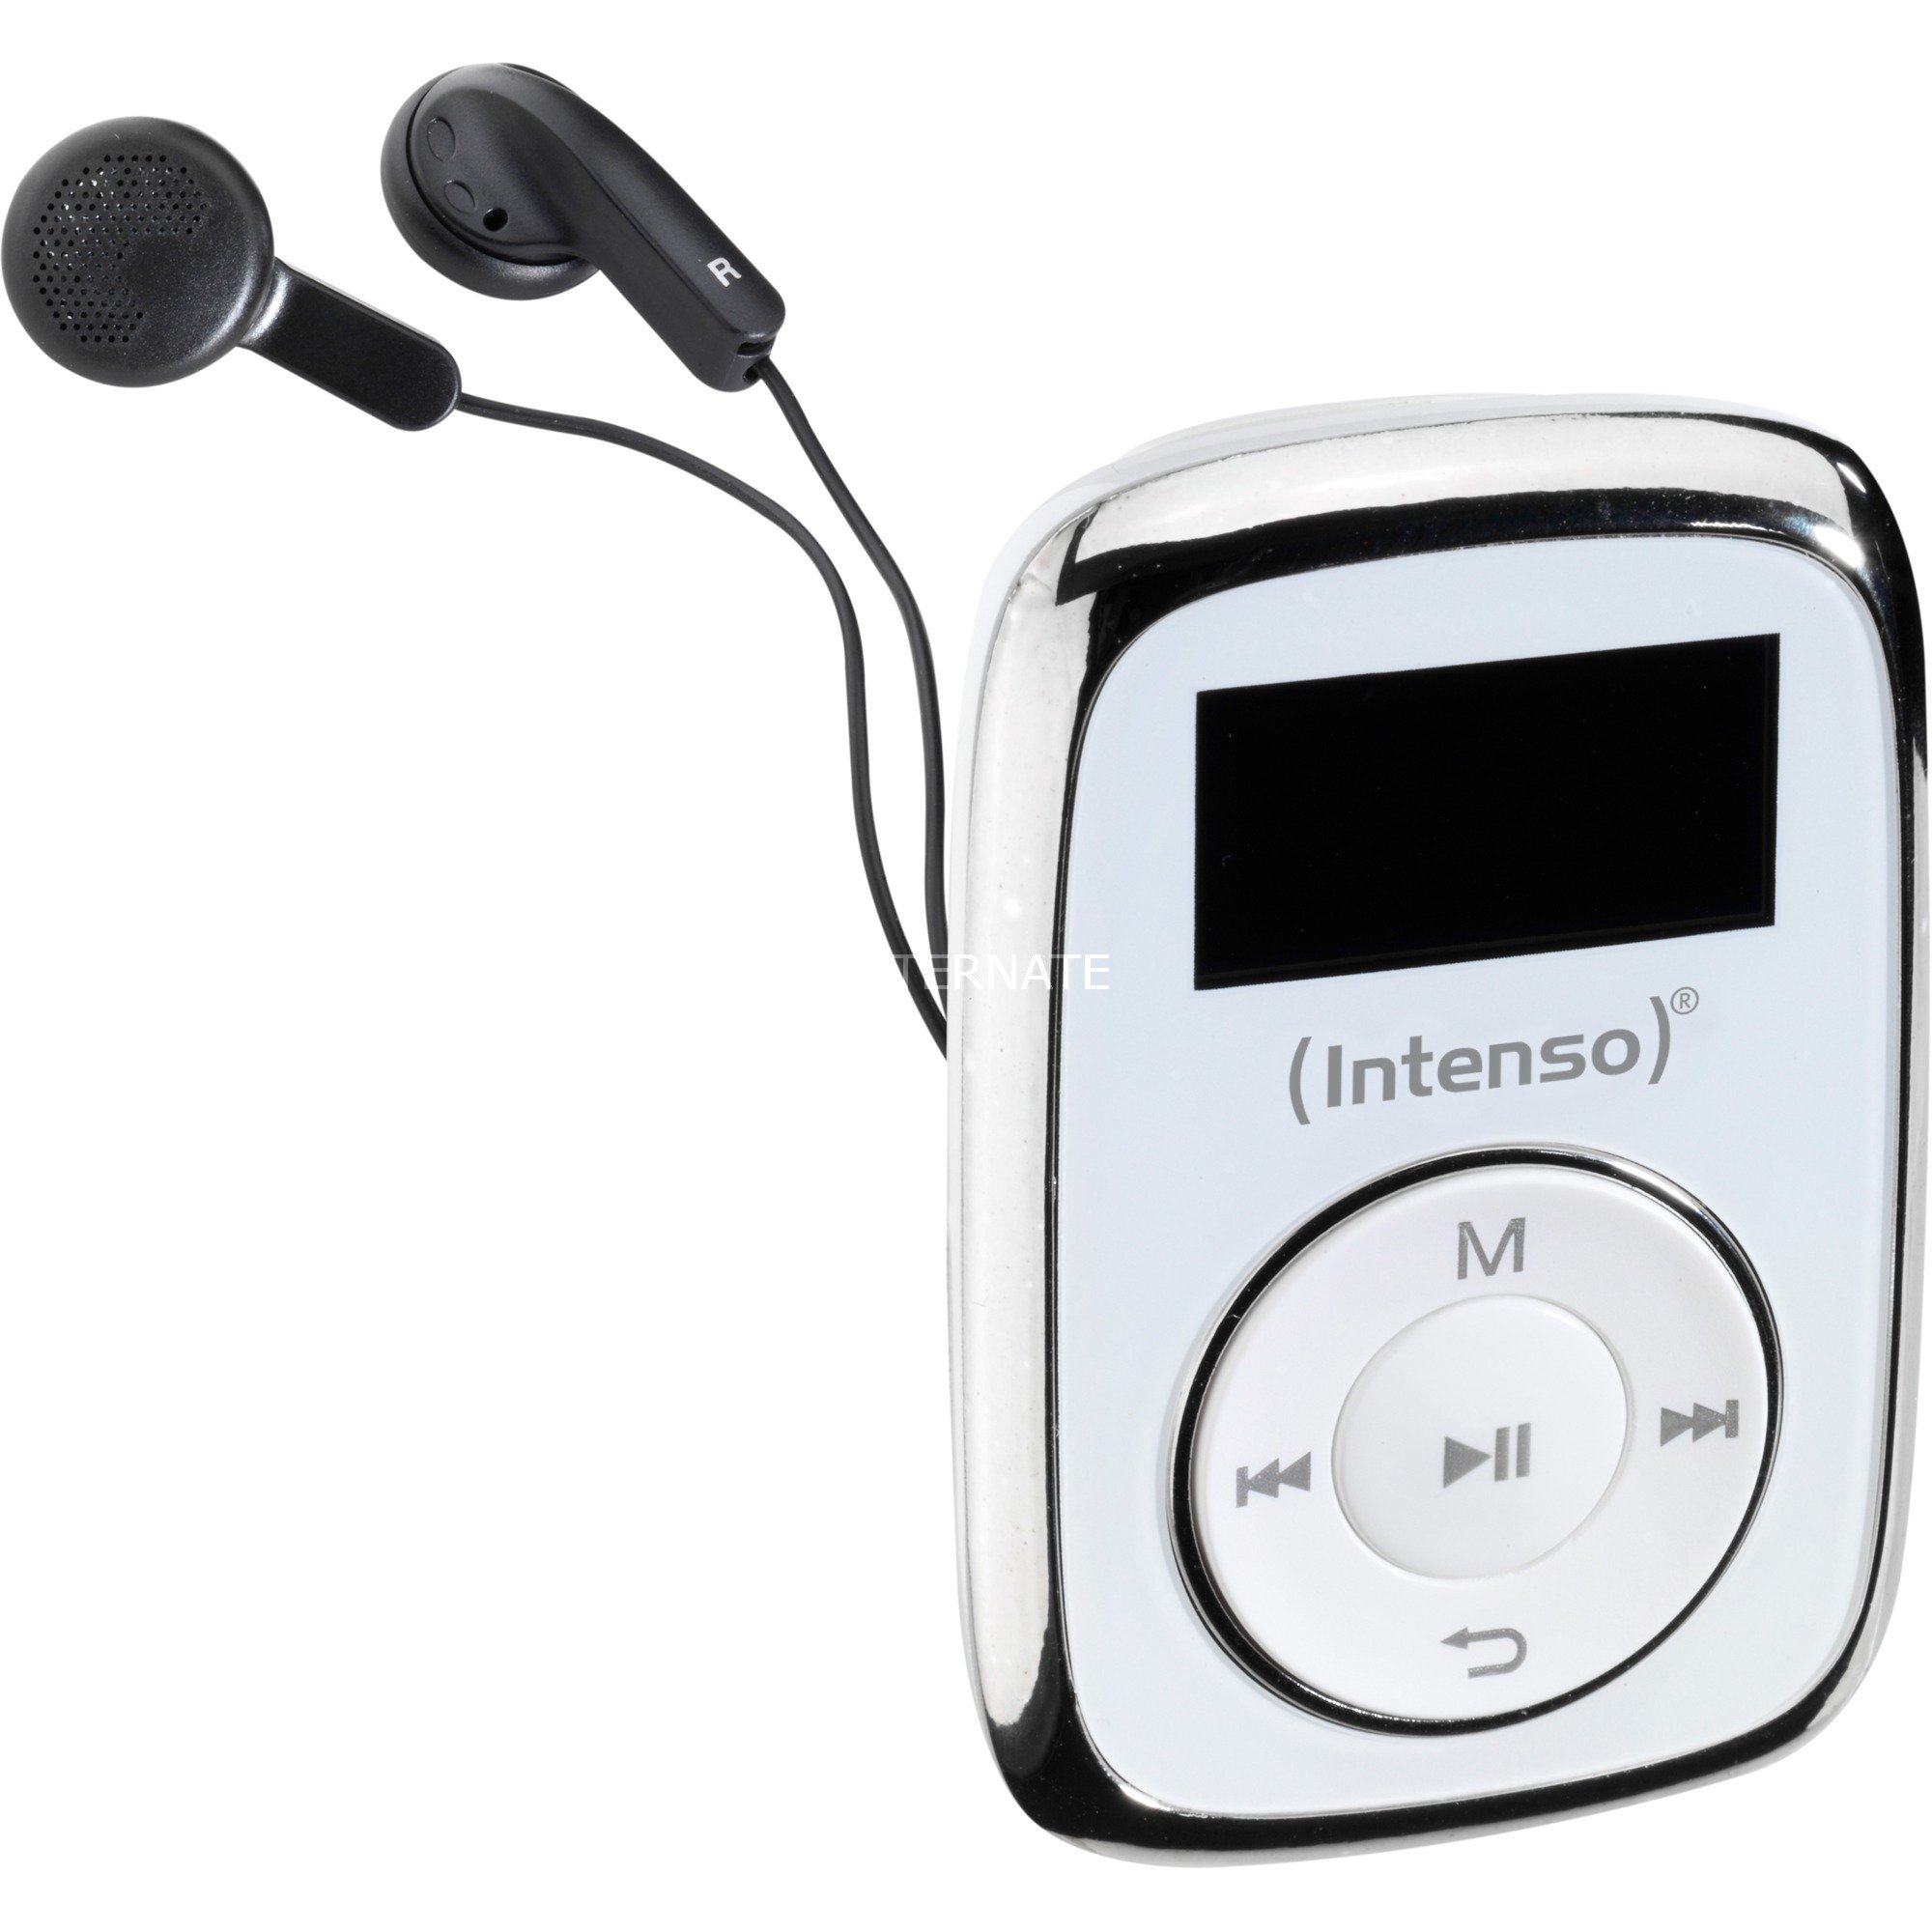 Music Mover Reproductor de MP3 Blanco 8 GB, Reproductor mp3